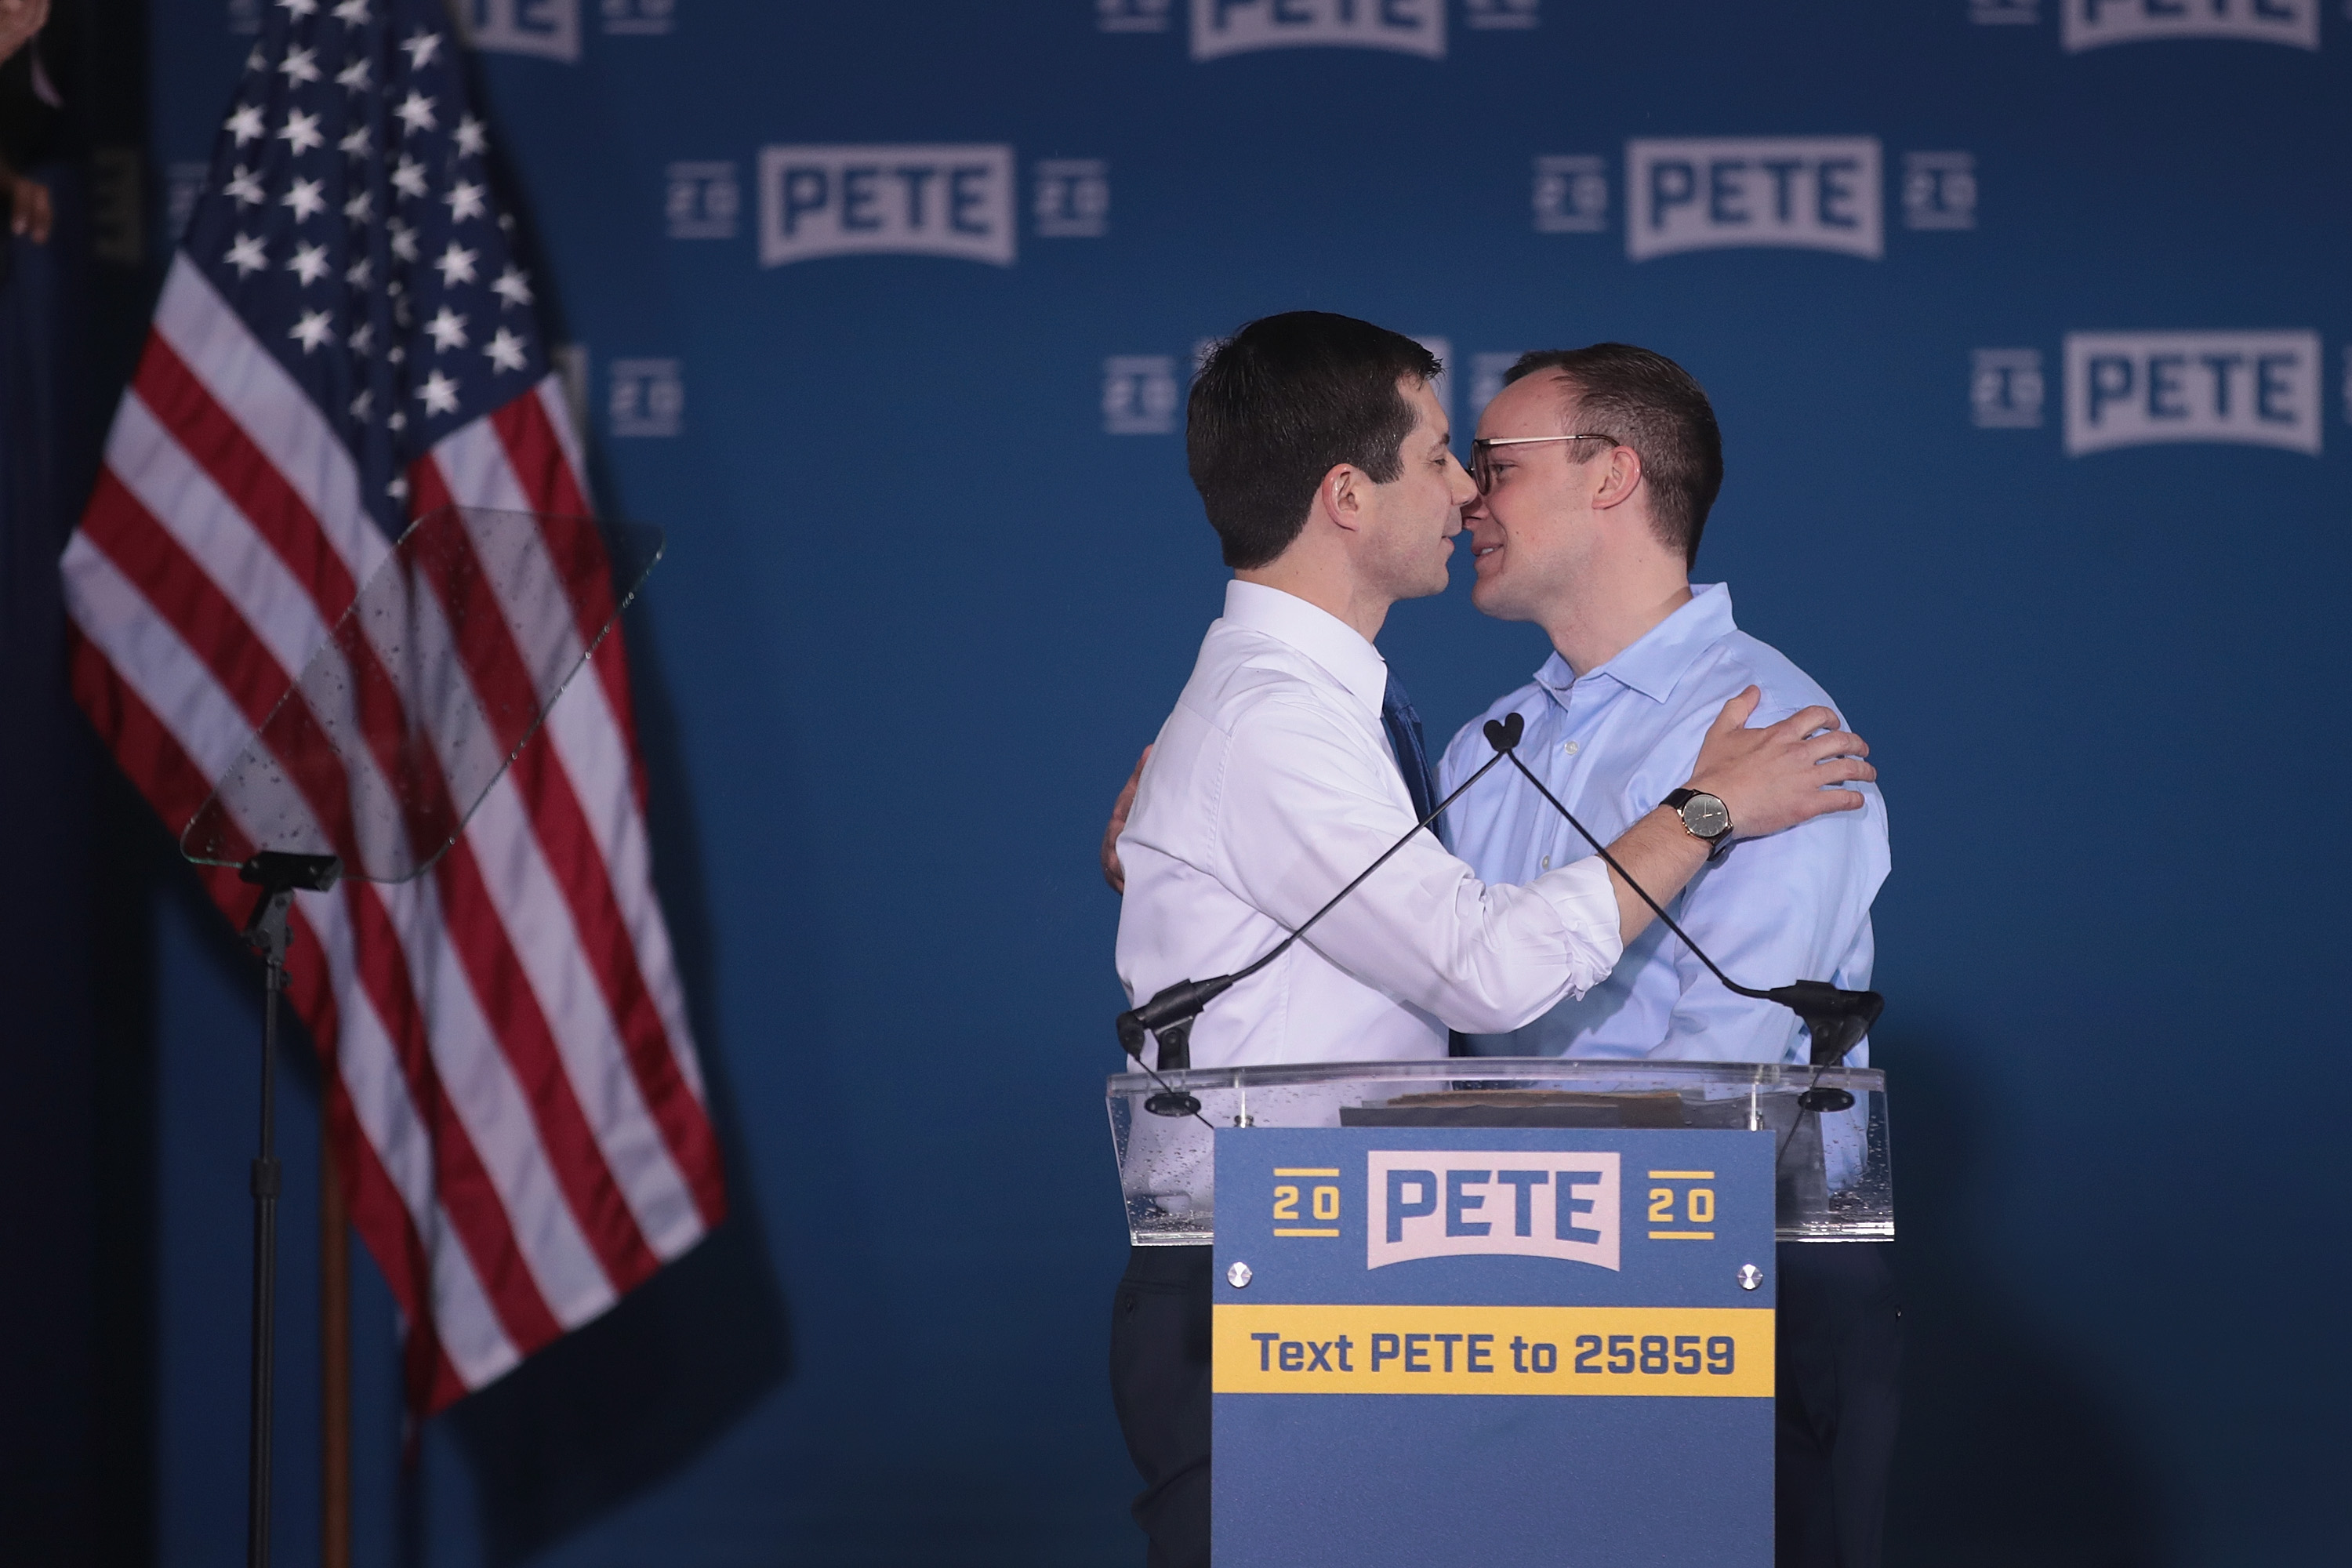 South Bend Mayor Pete Buttigieg greets his husband Chasten Glezman (R) after announcing that he will be seeking the Democratic nomination for president during a rally in the old Studebaker car factory on April 14, 2019 in South Bend, Indiana.